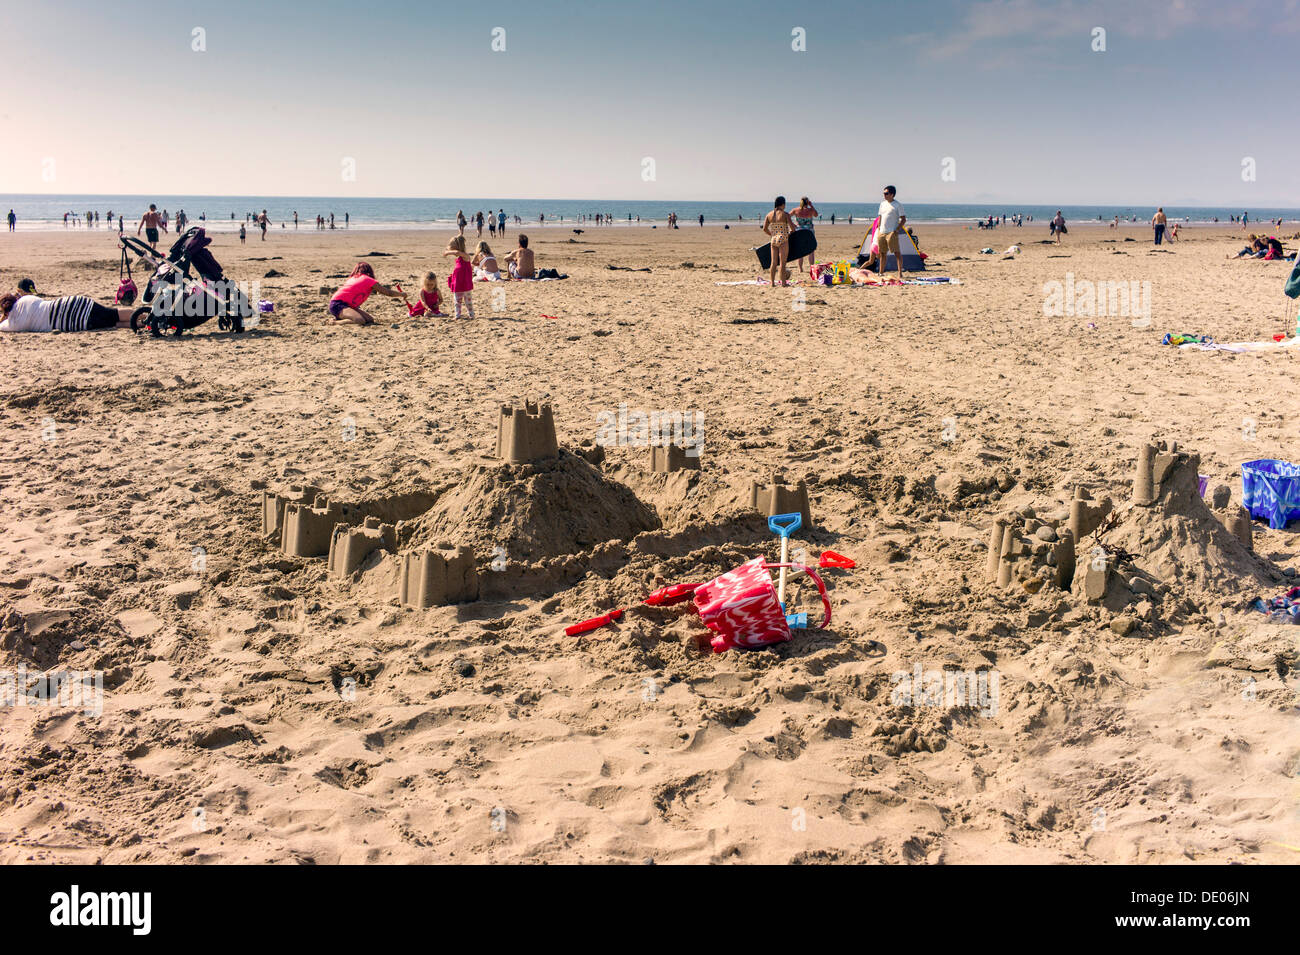 An abandoned childrens bucket and spade with newly made sand castle in the foreground, busy beach scene down to the sea - Stock Image